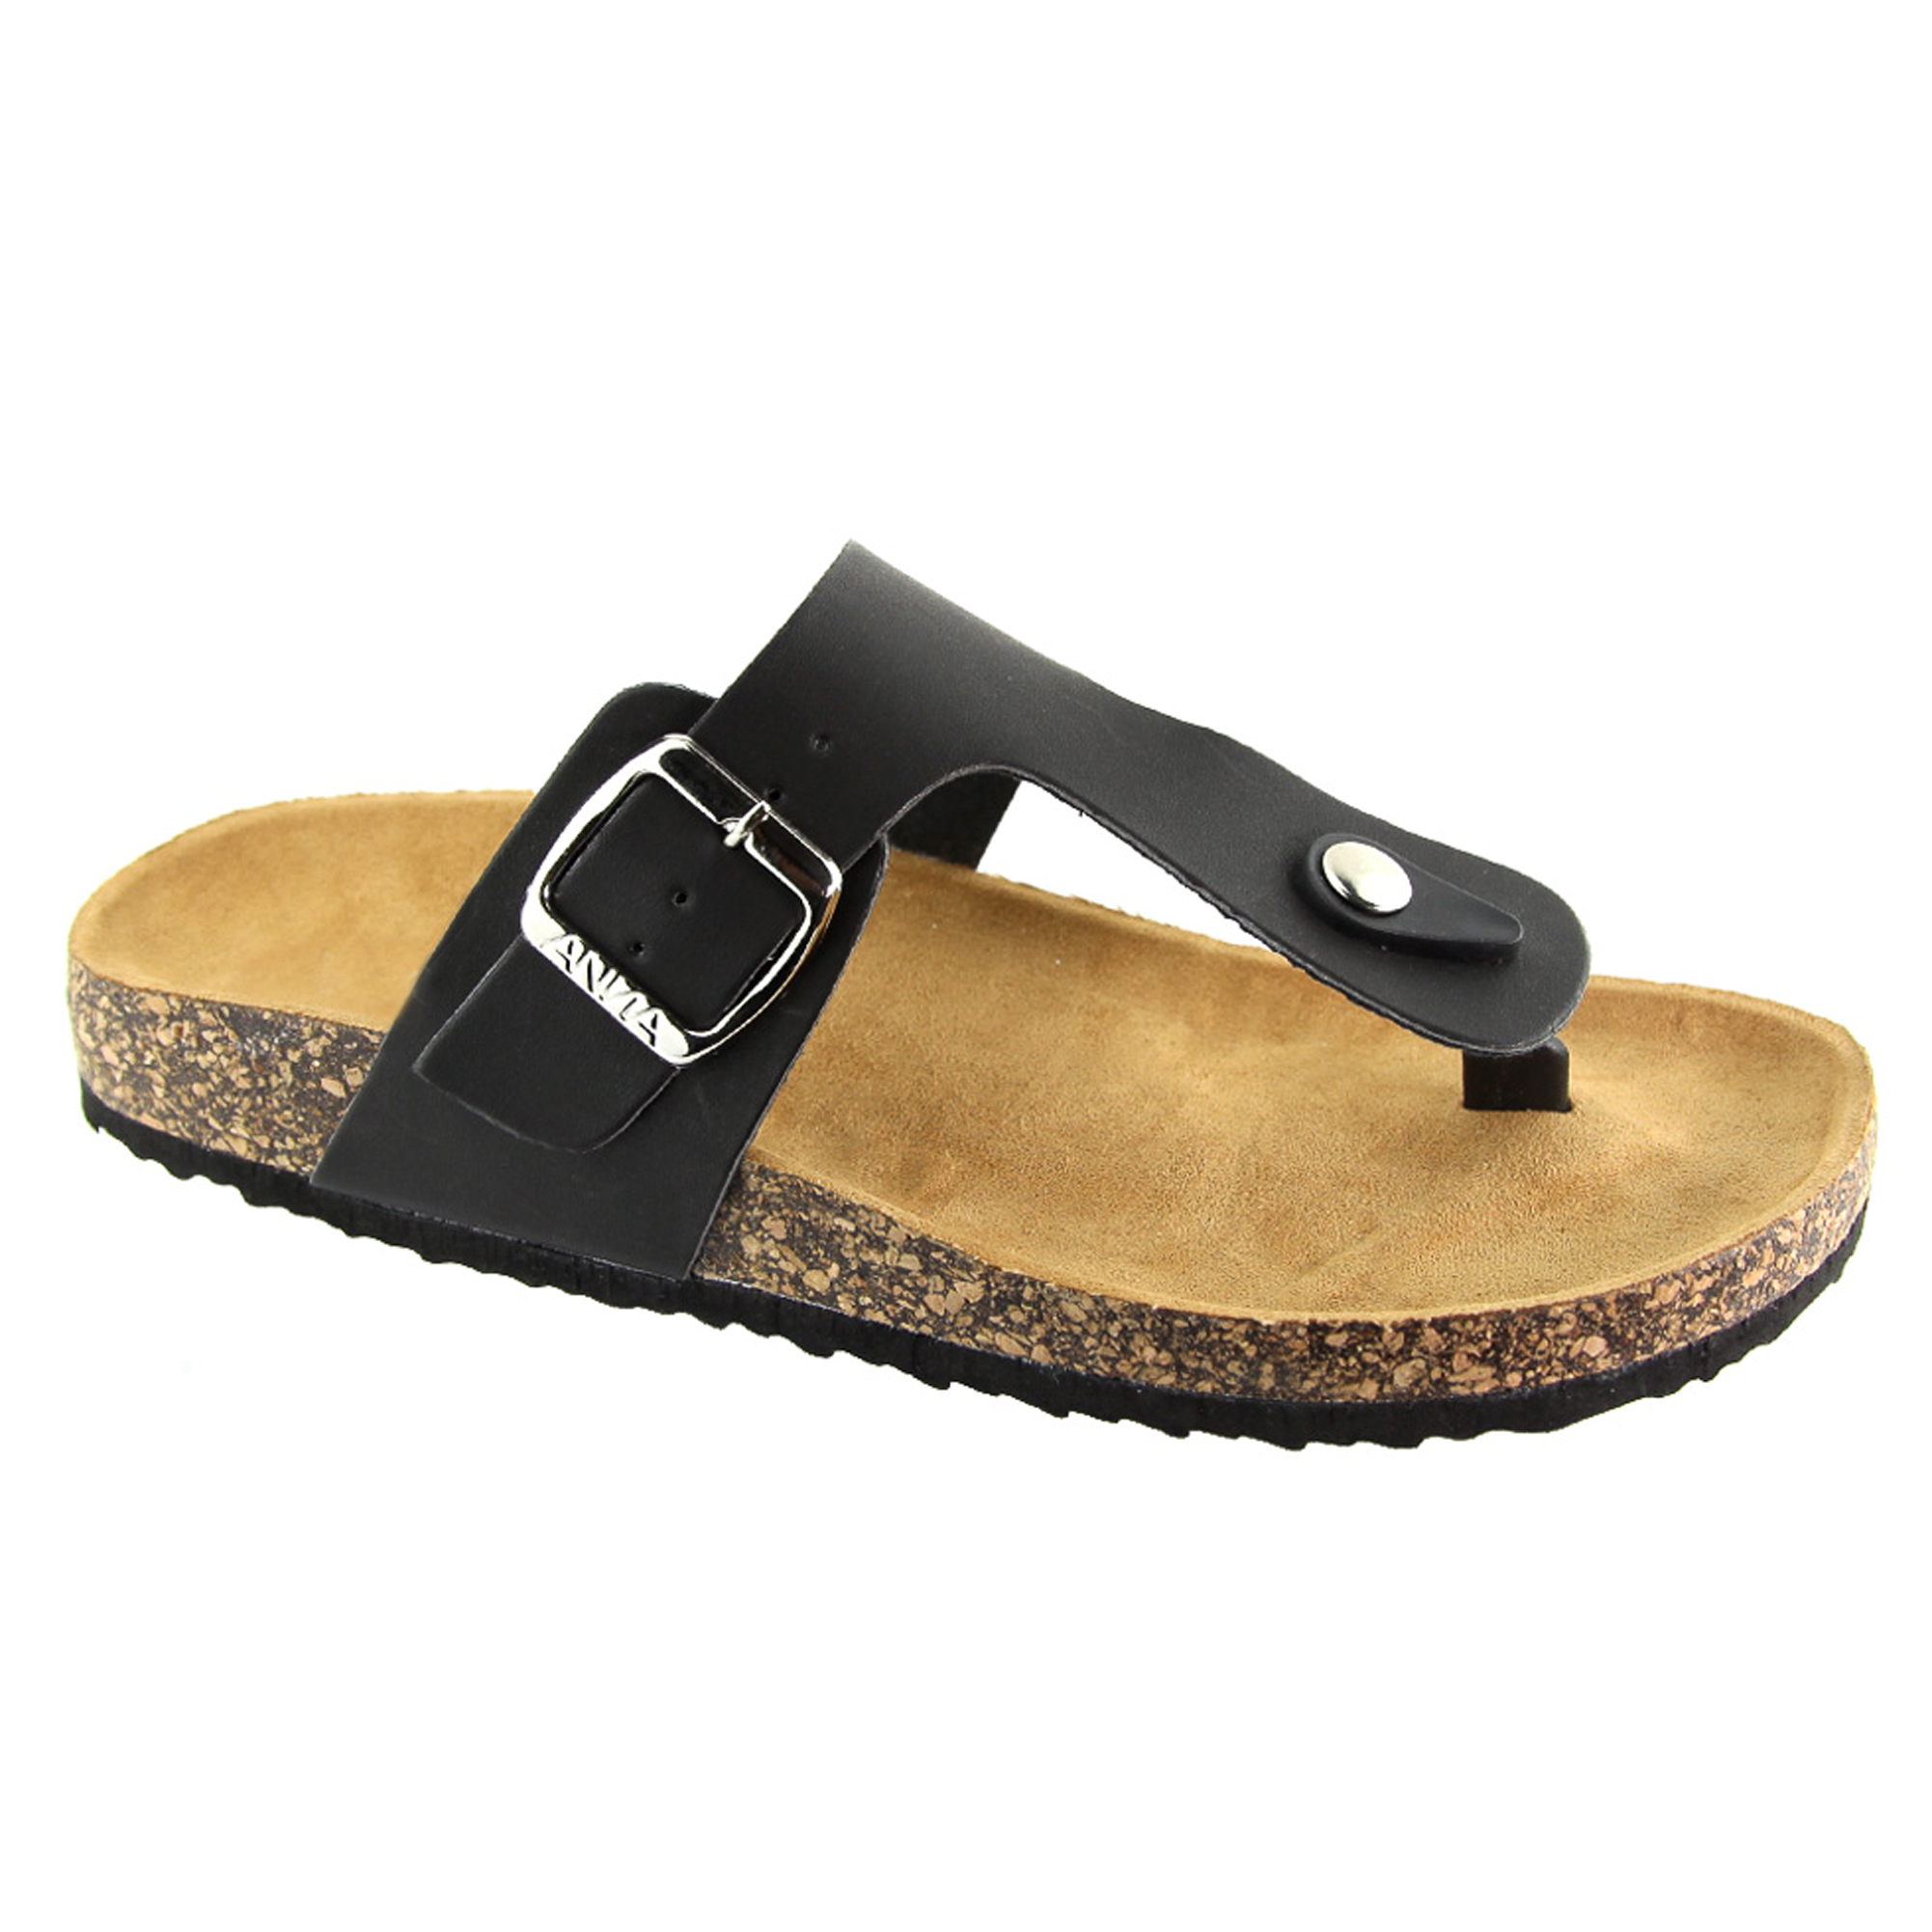 Women's Casual Buckle Thong Strap Sandals Flip Flop Platform Footbed Sandals (FREE SHIPPING)